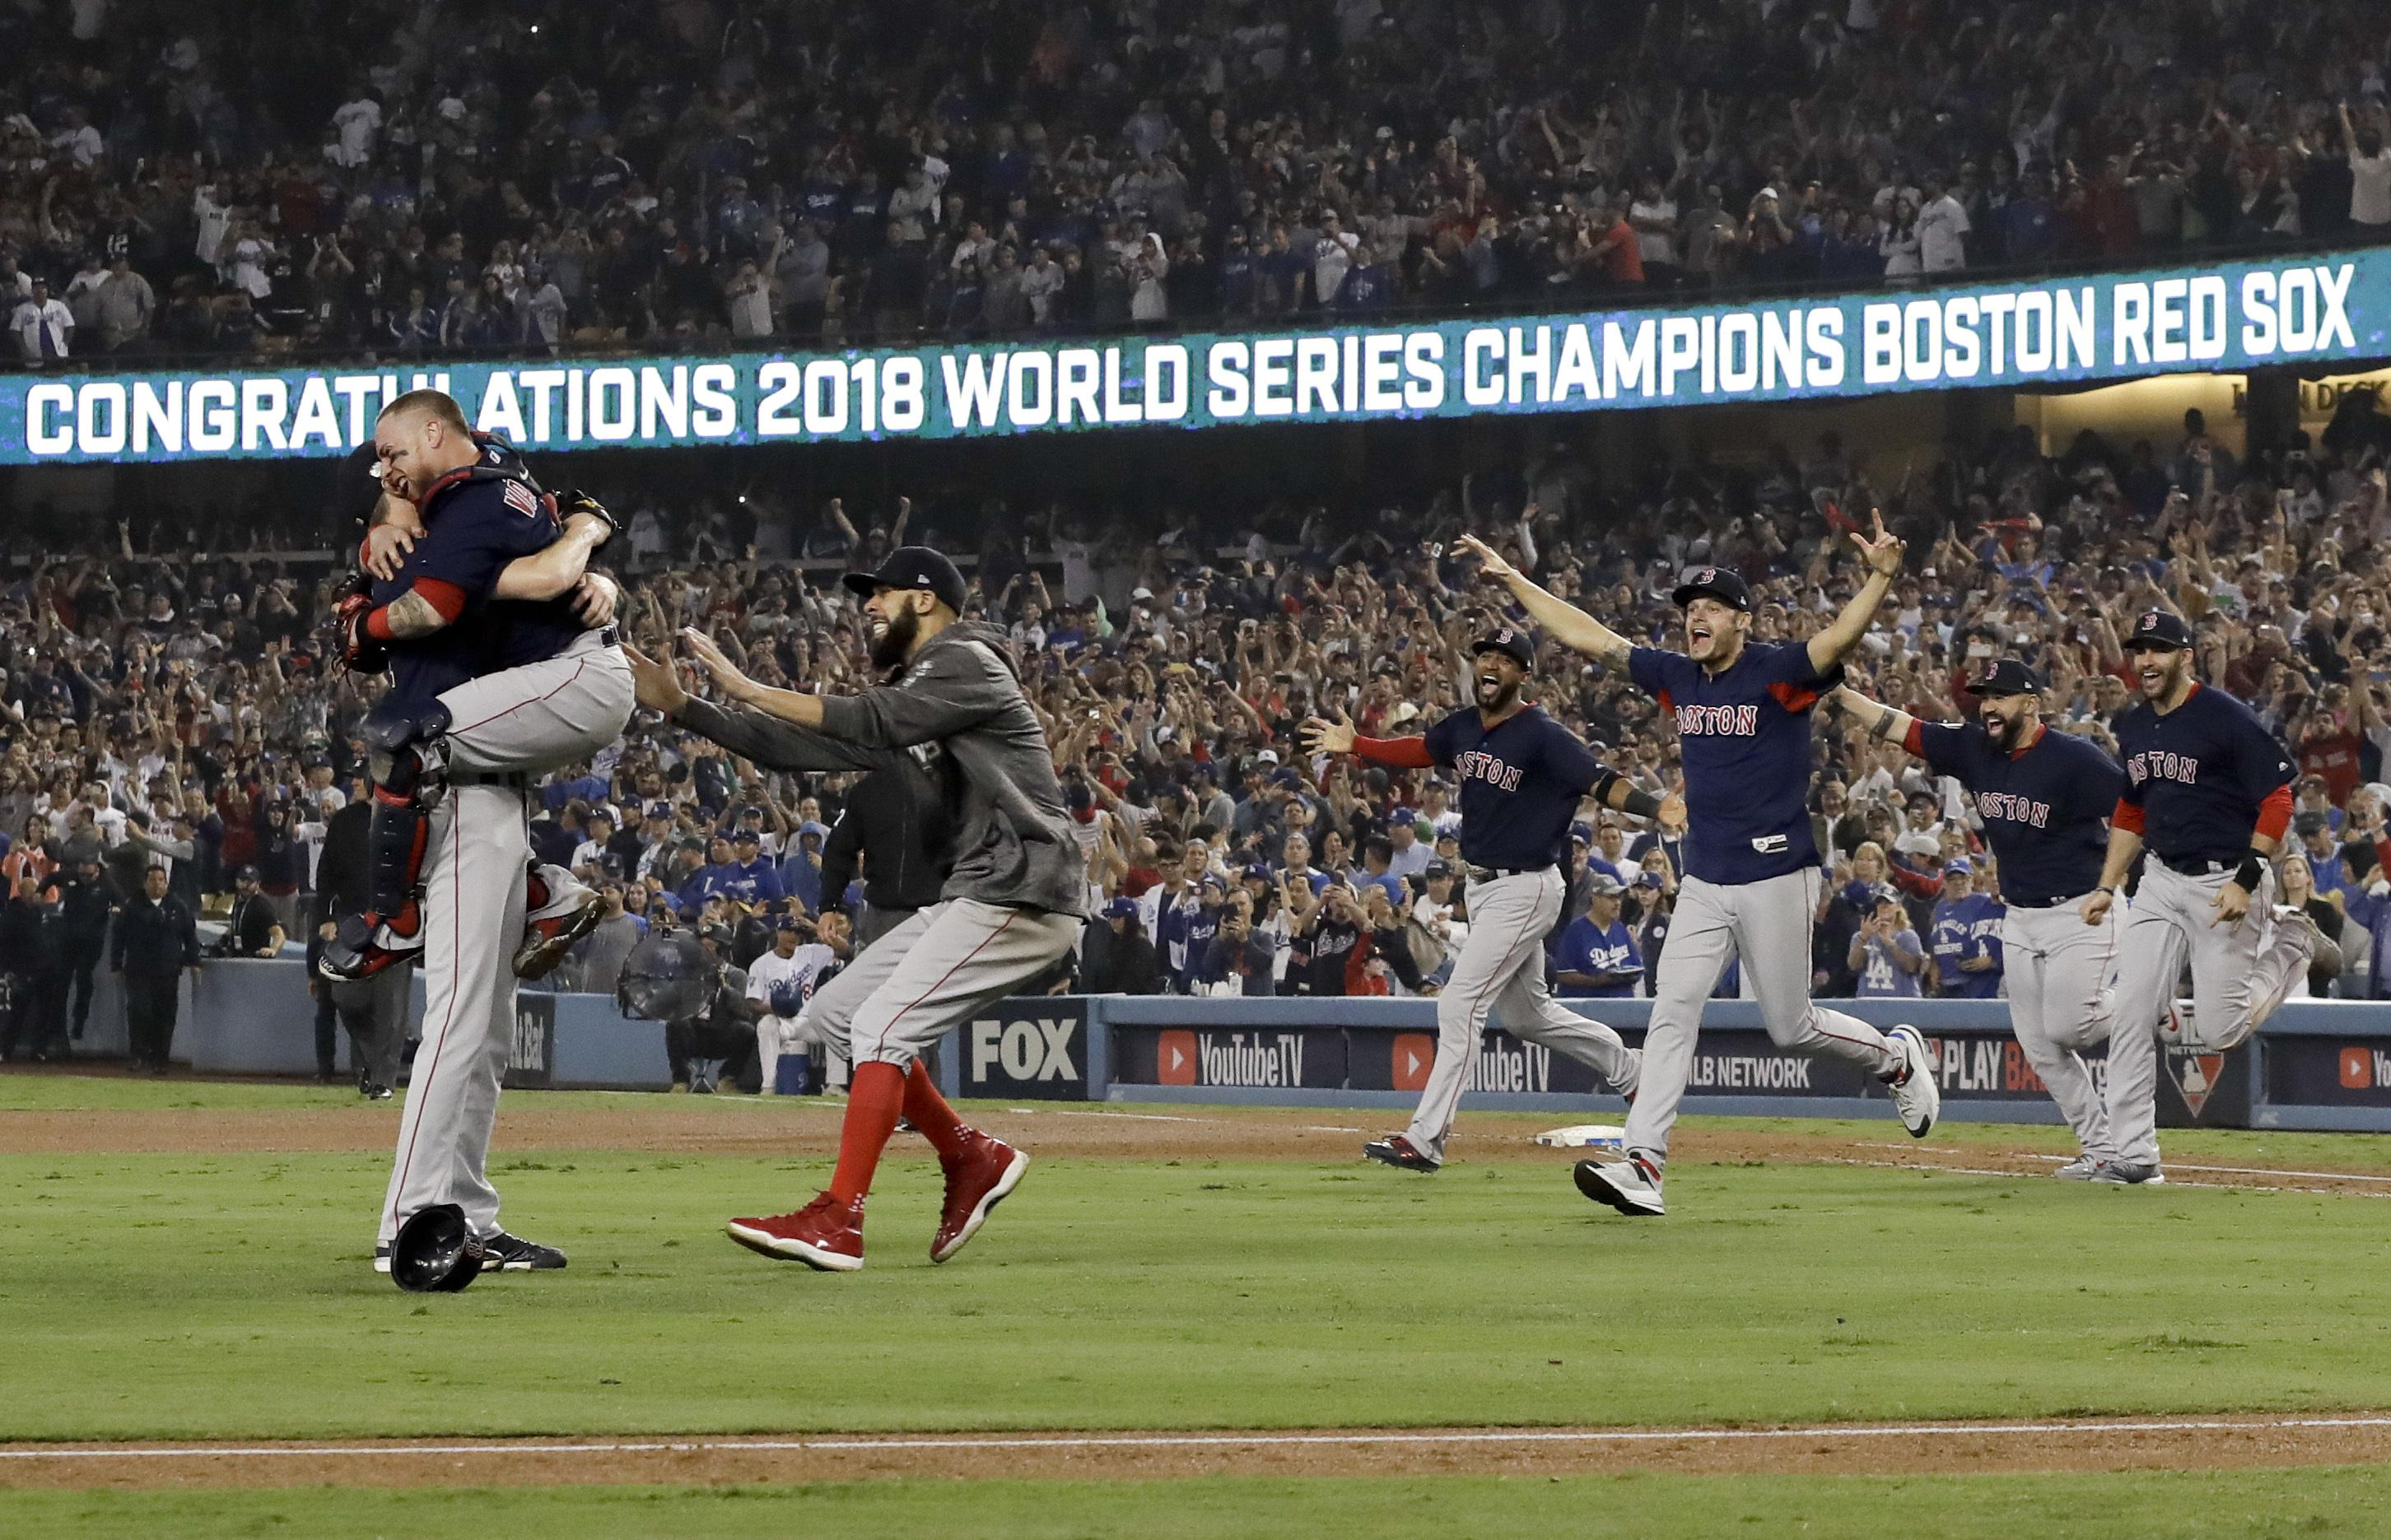 The Red Sox won 5-1 to win the series 4 games to 1